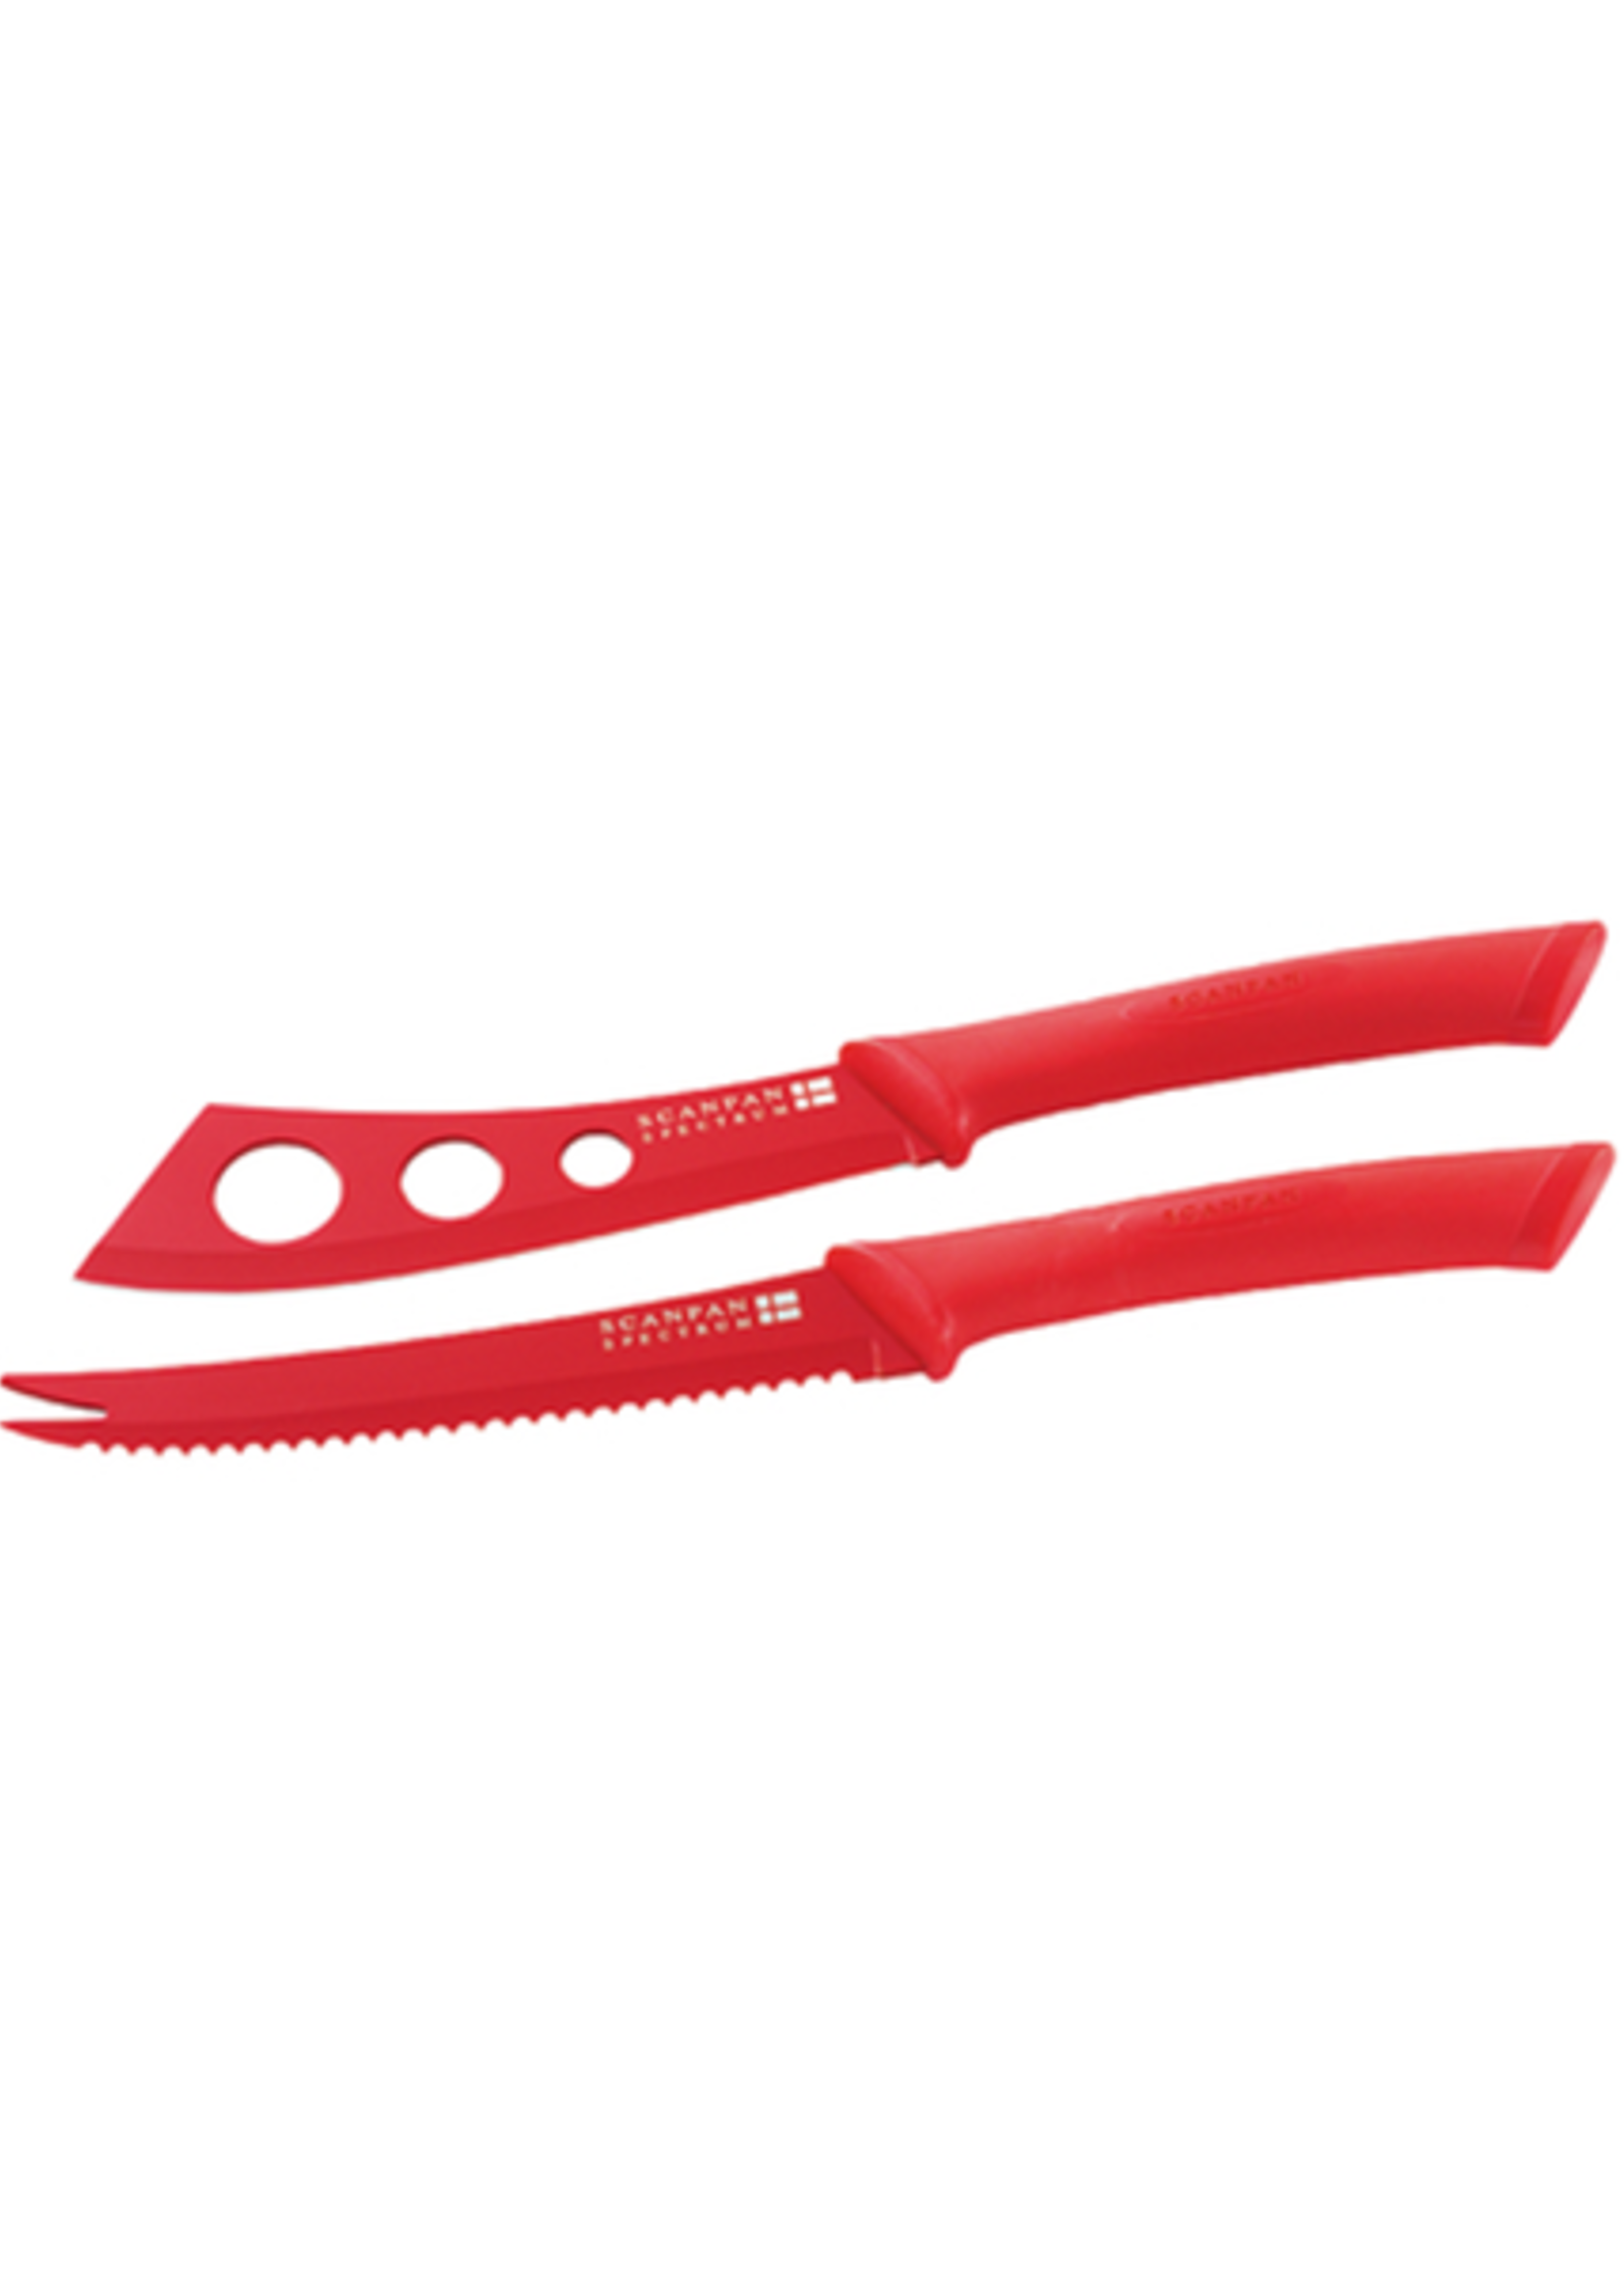 Spectrum Cheese Knife Set - Red